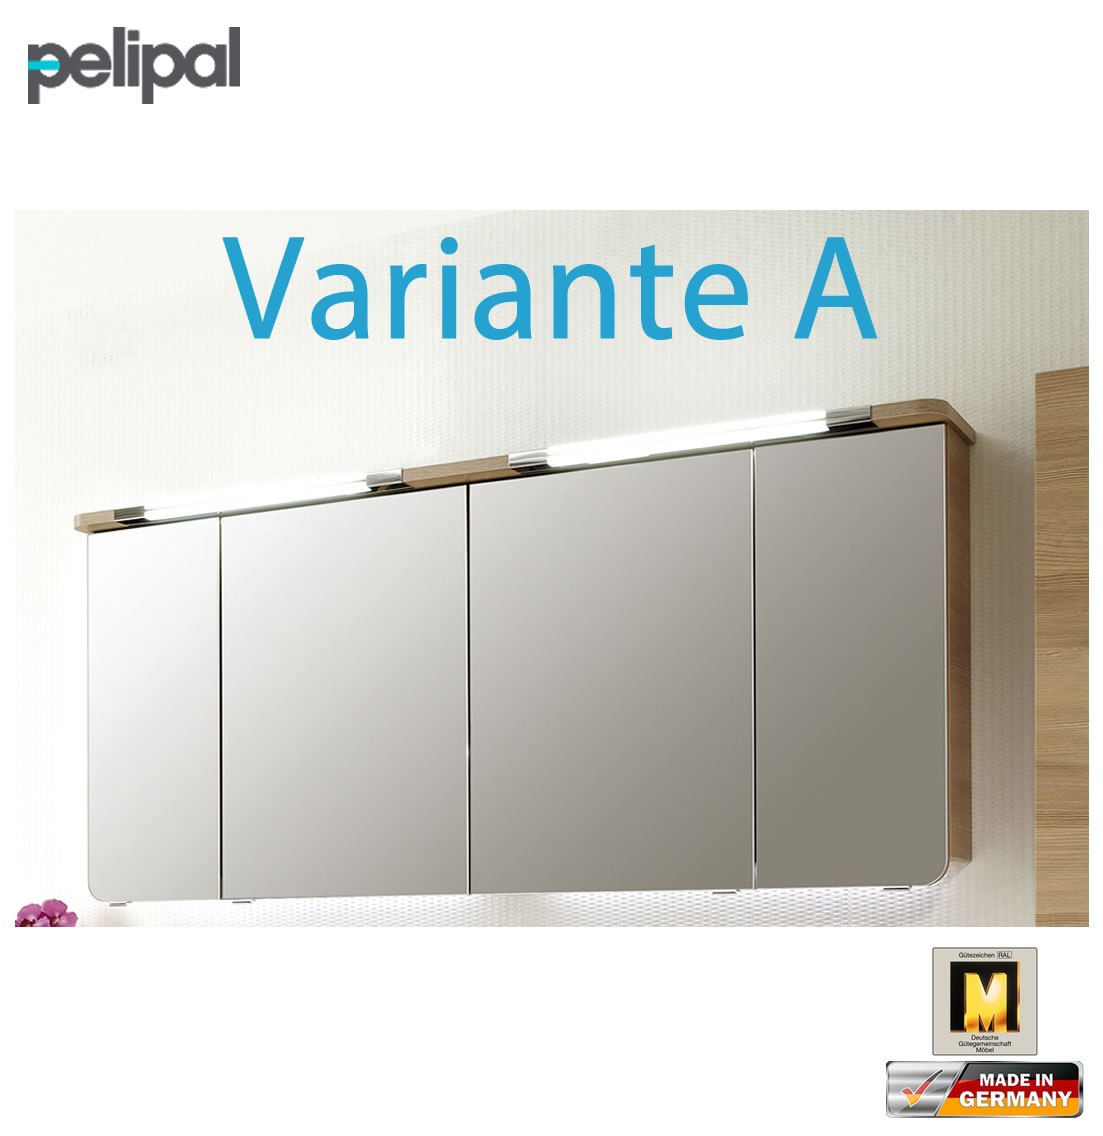 pelipal cassca spiegelschrank 162 cm cs sps 21 variante a impuls home. Black Bedroom Furniture Sets. Home Design Ideas